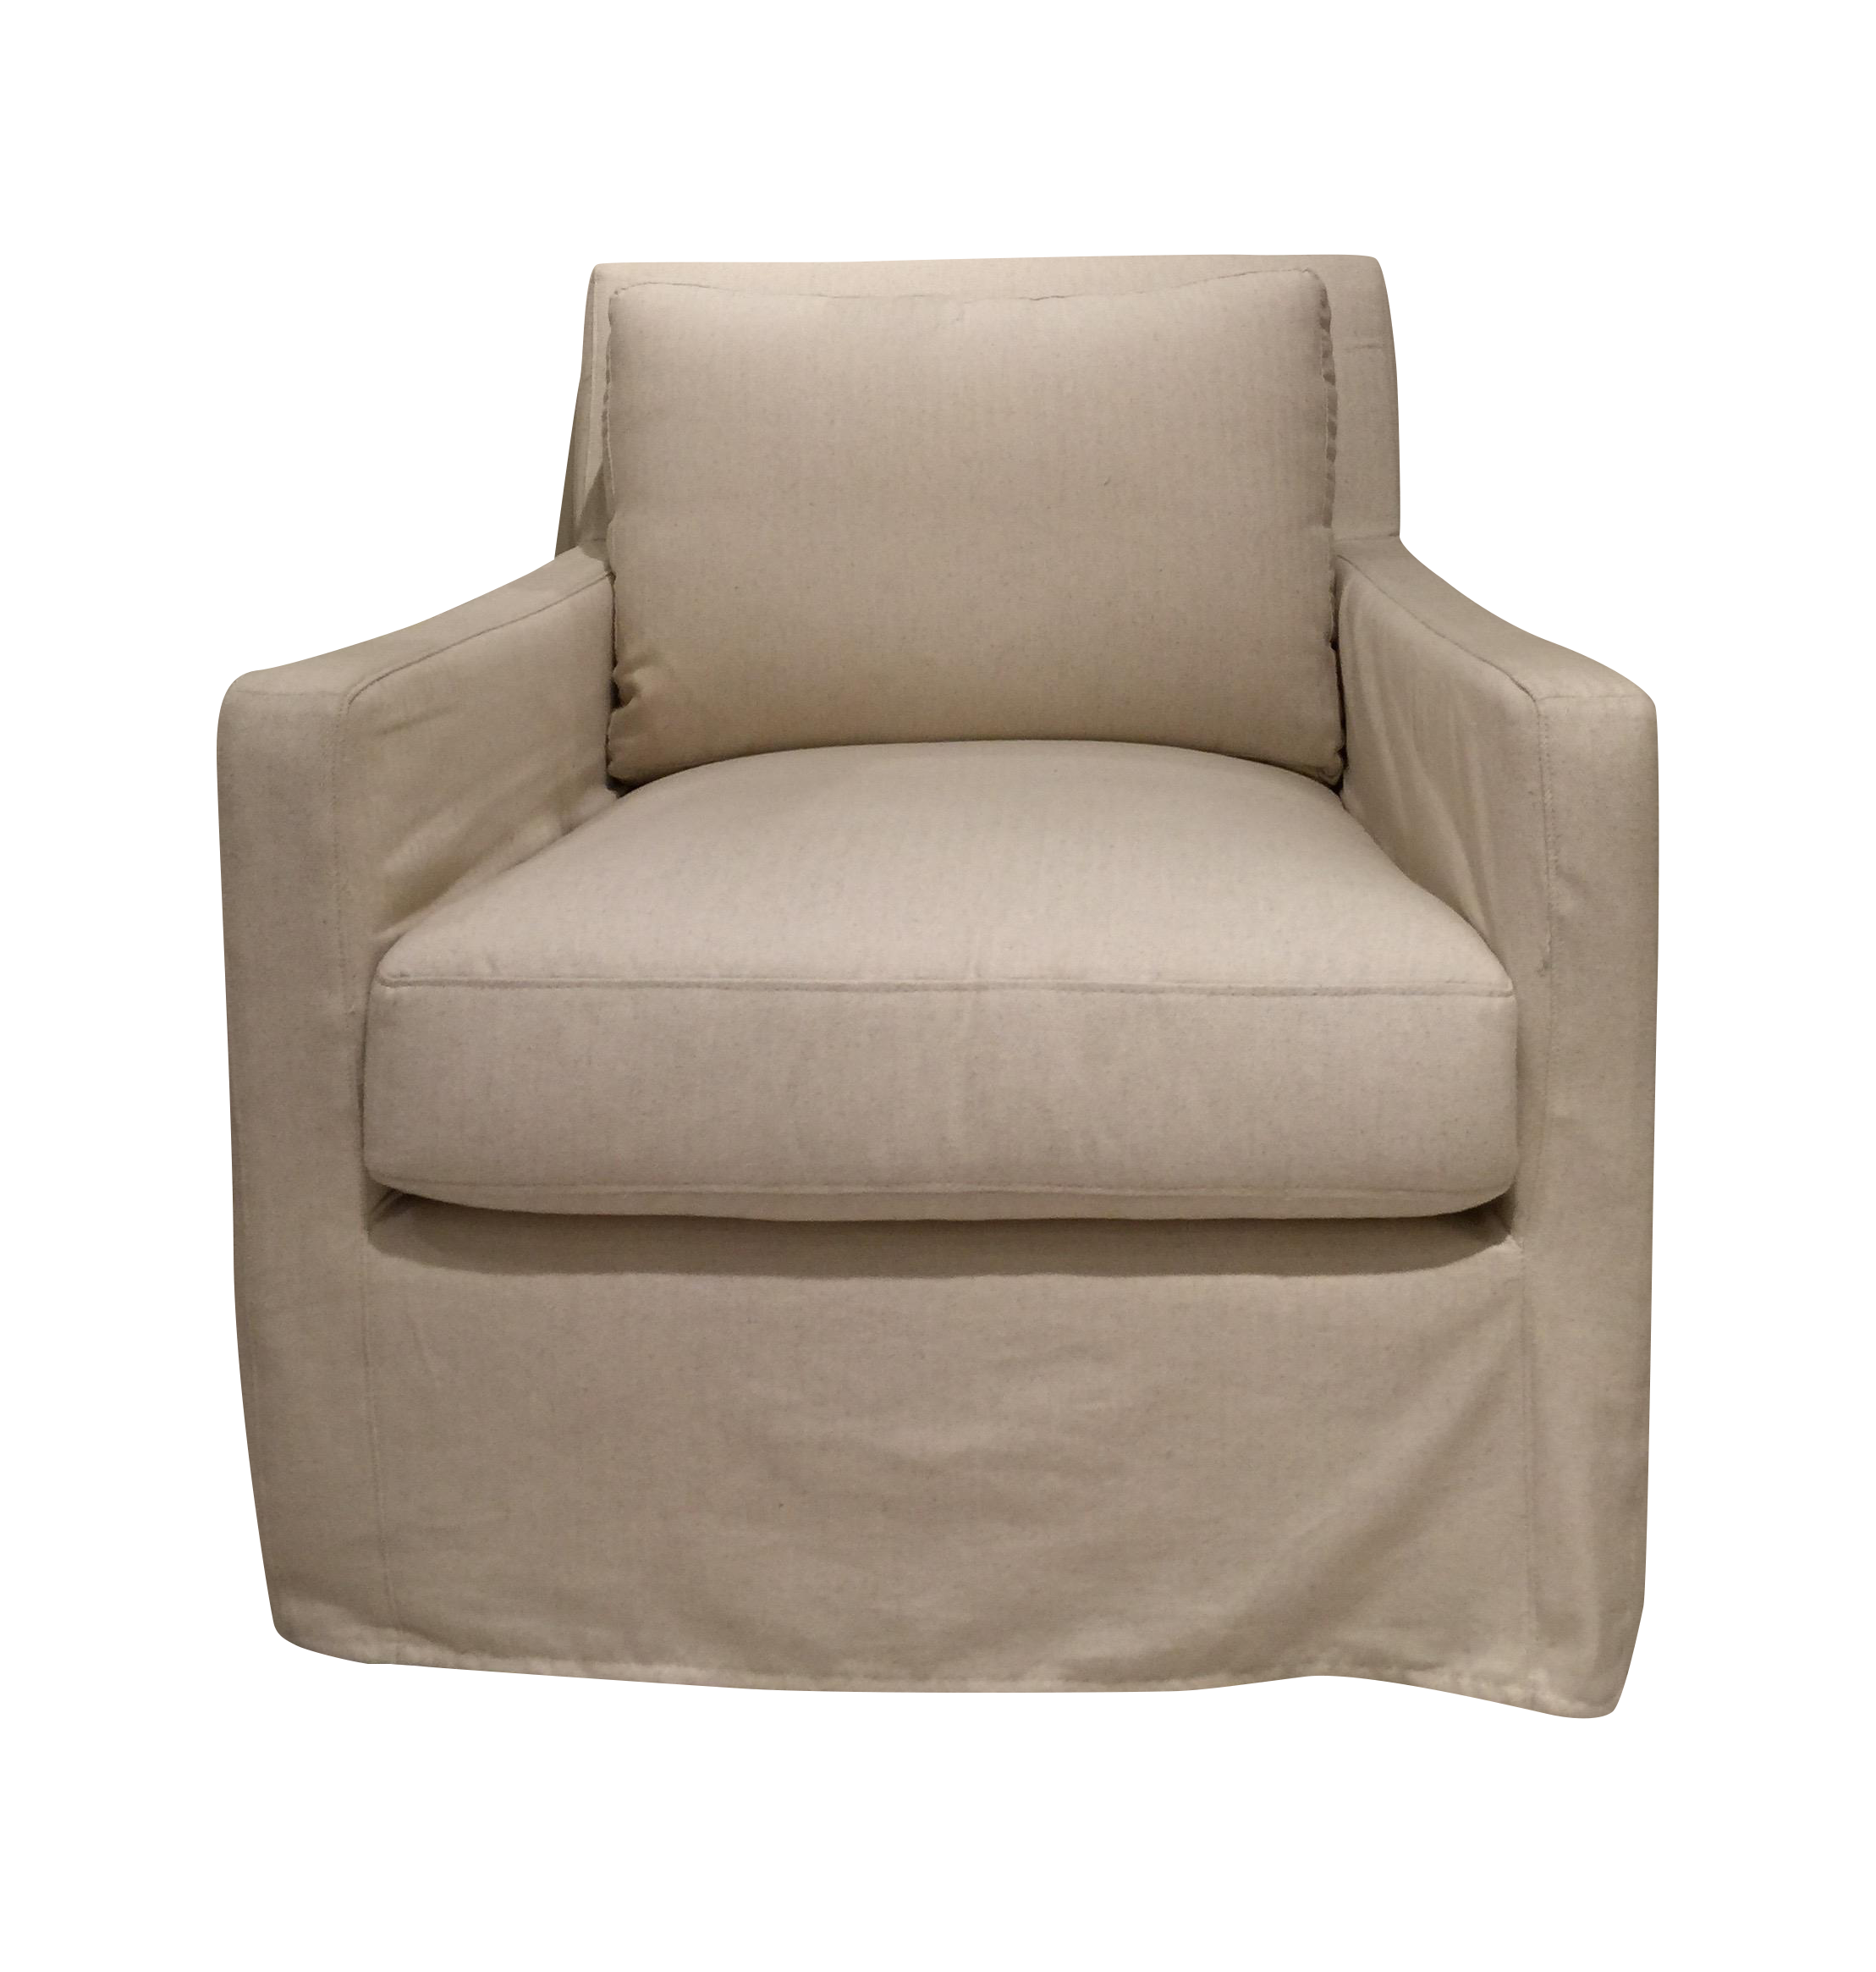 Bernhardt transitional slip covered lounge chair chairish for Bernhardt chaise lounge